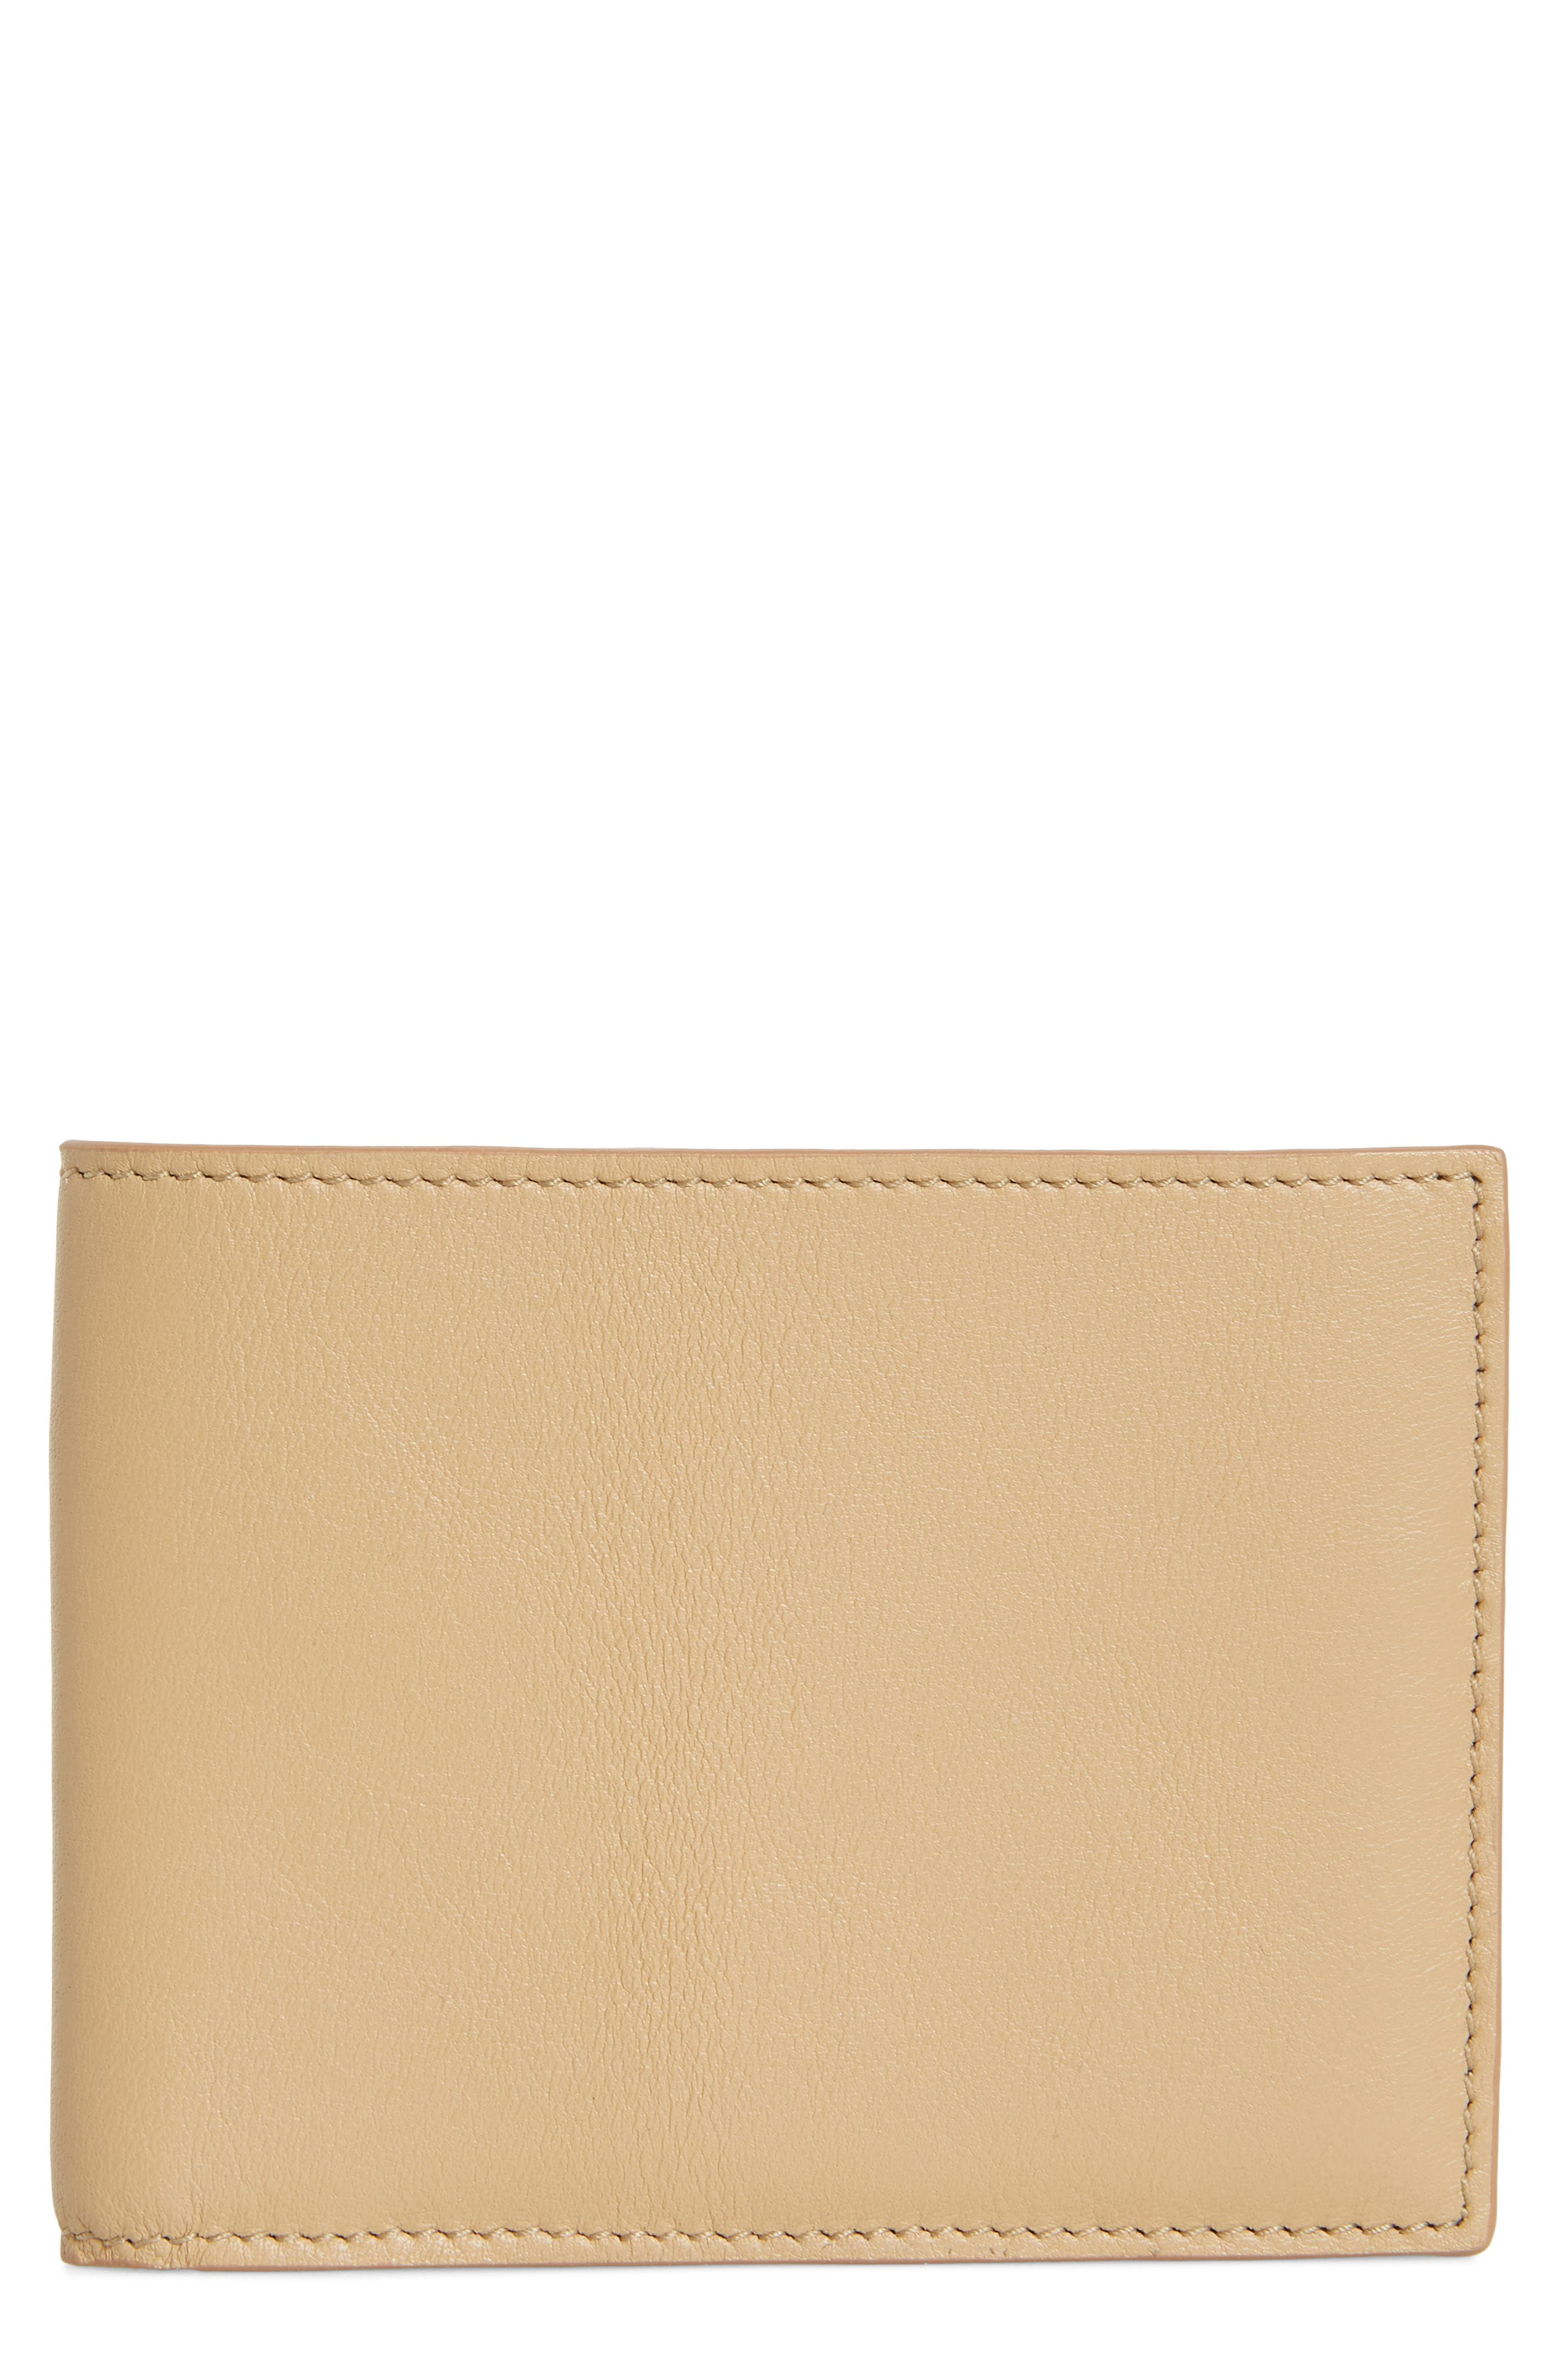 COMMON PROJECTS Bifold Nappa Leather Wallet, Main, color, TAN